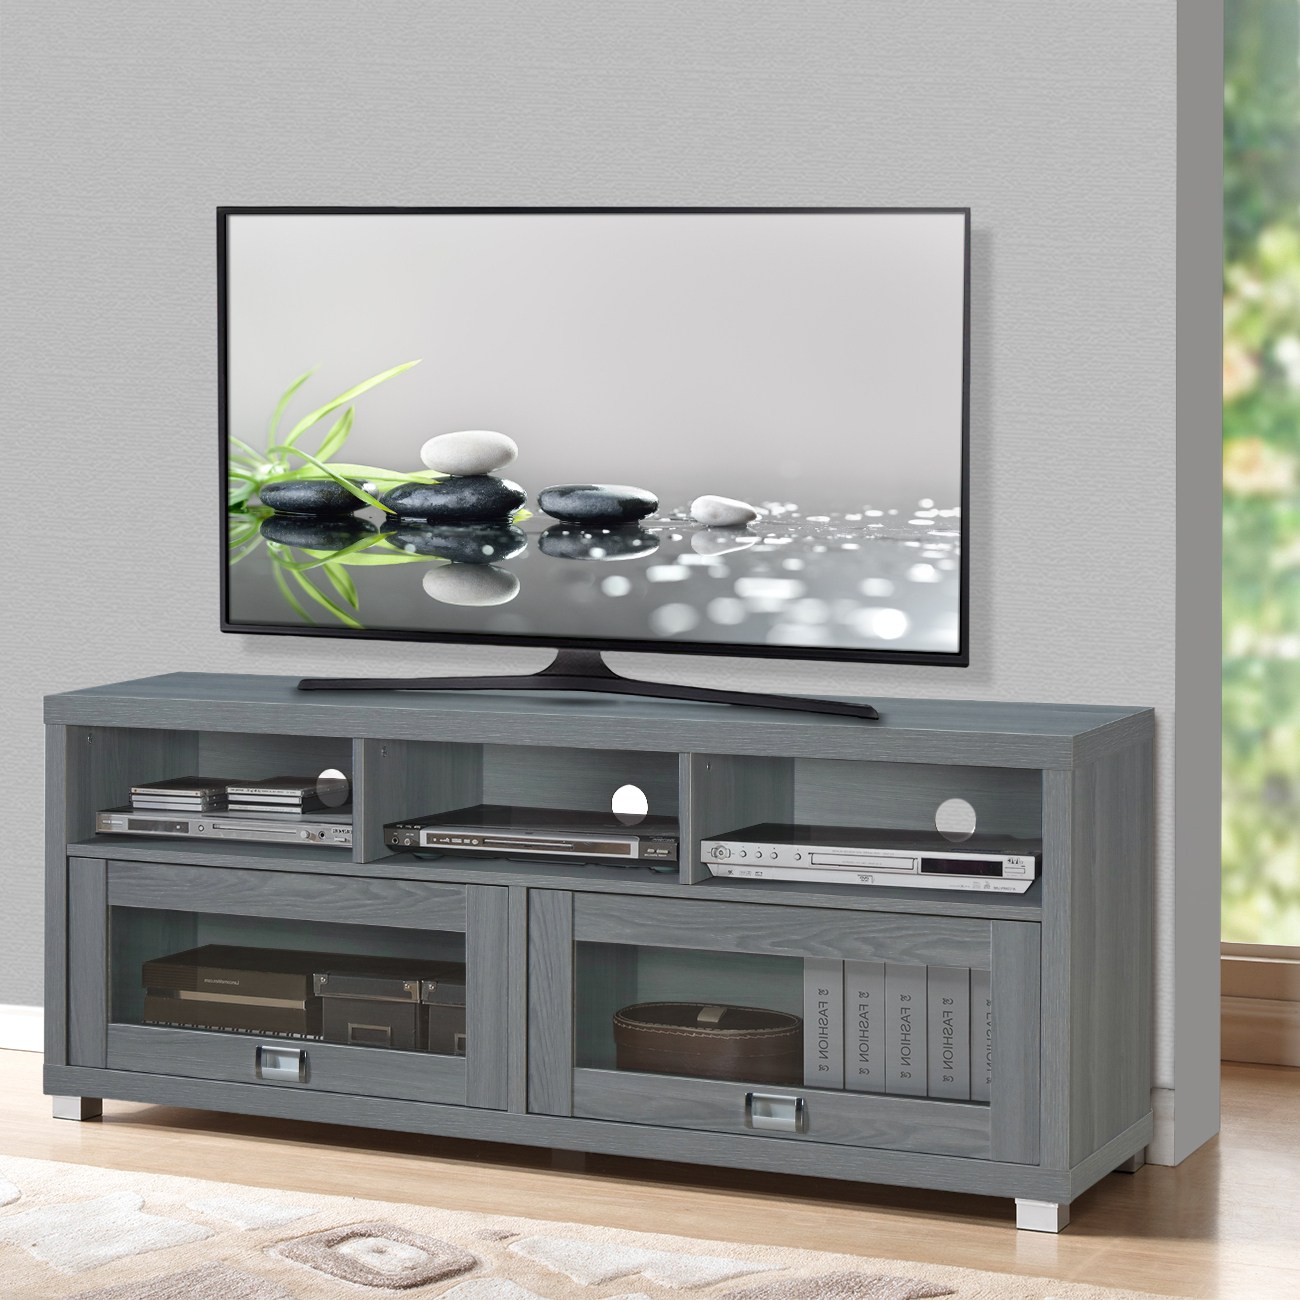 """Flat Screen Tv Stand Up To 75 Inch 50 55 60 65 70 55in Throughout Spellman Tv Stands For Tvs Up To 55"""" (View 13 of 20)"""